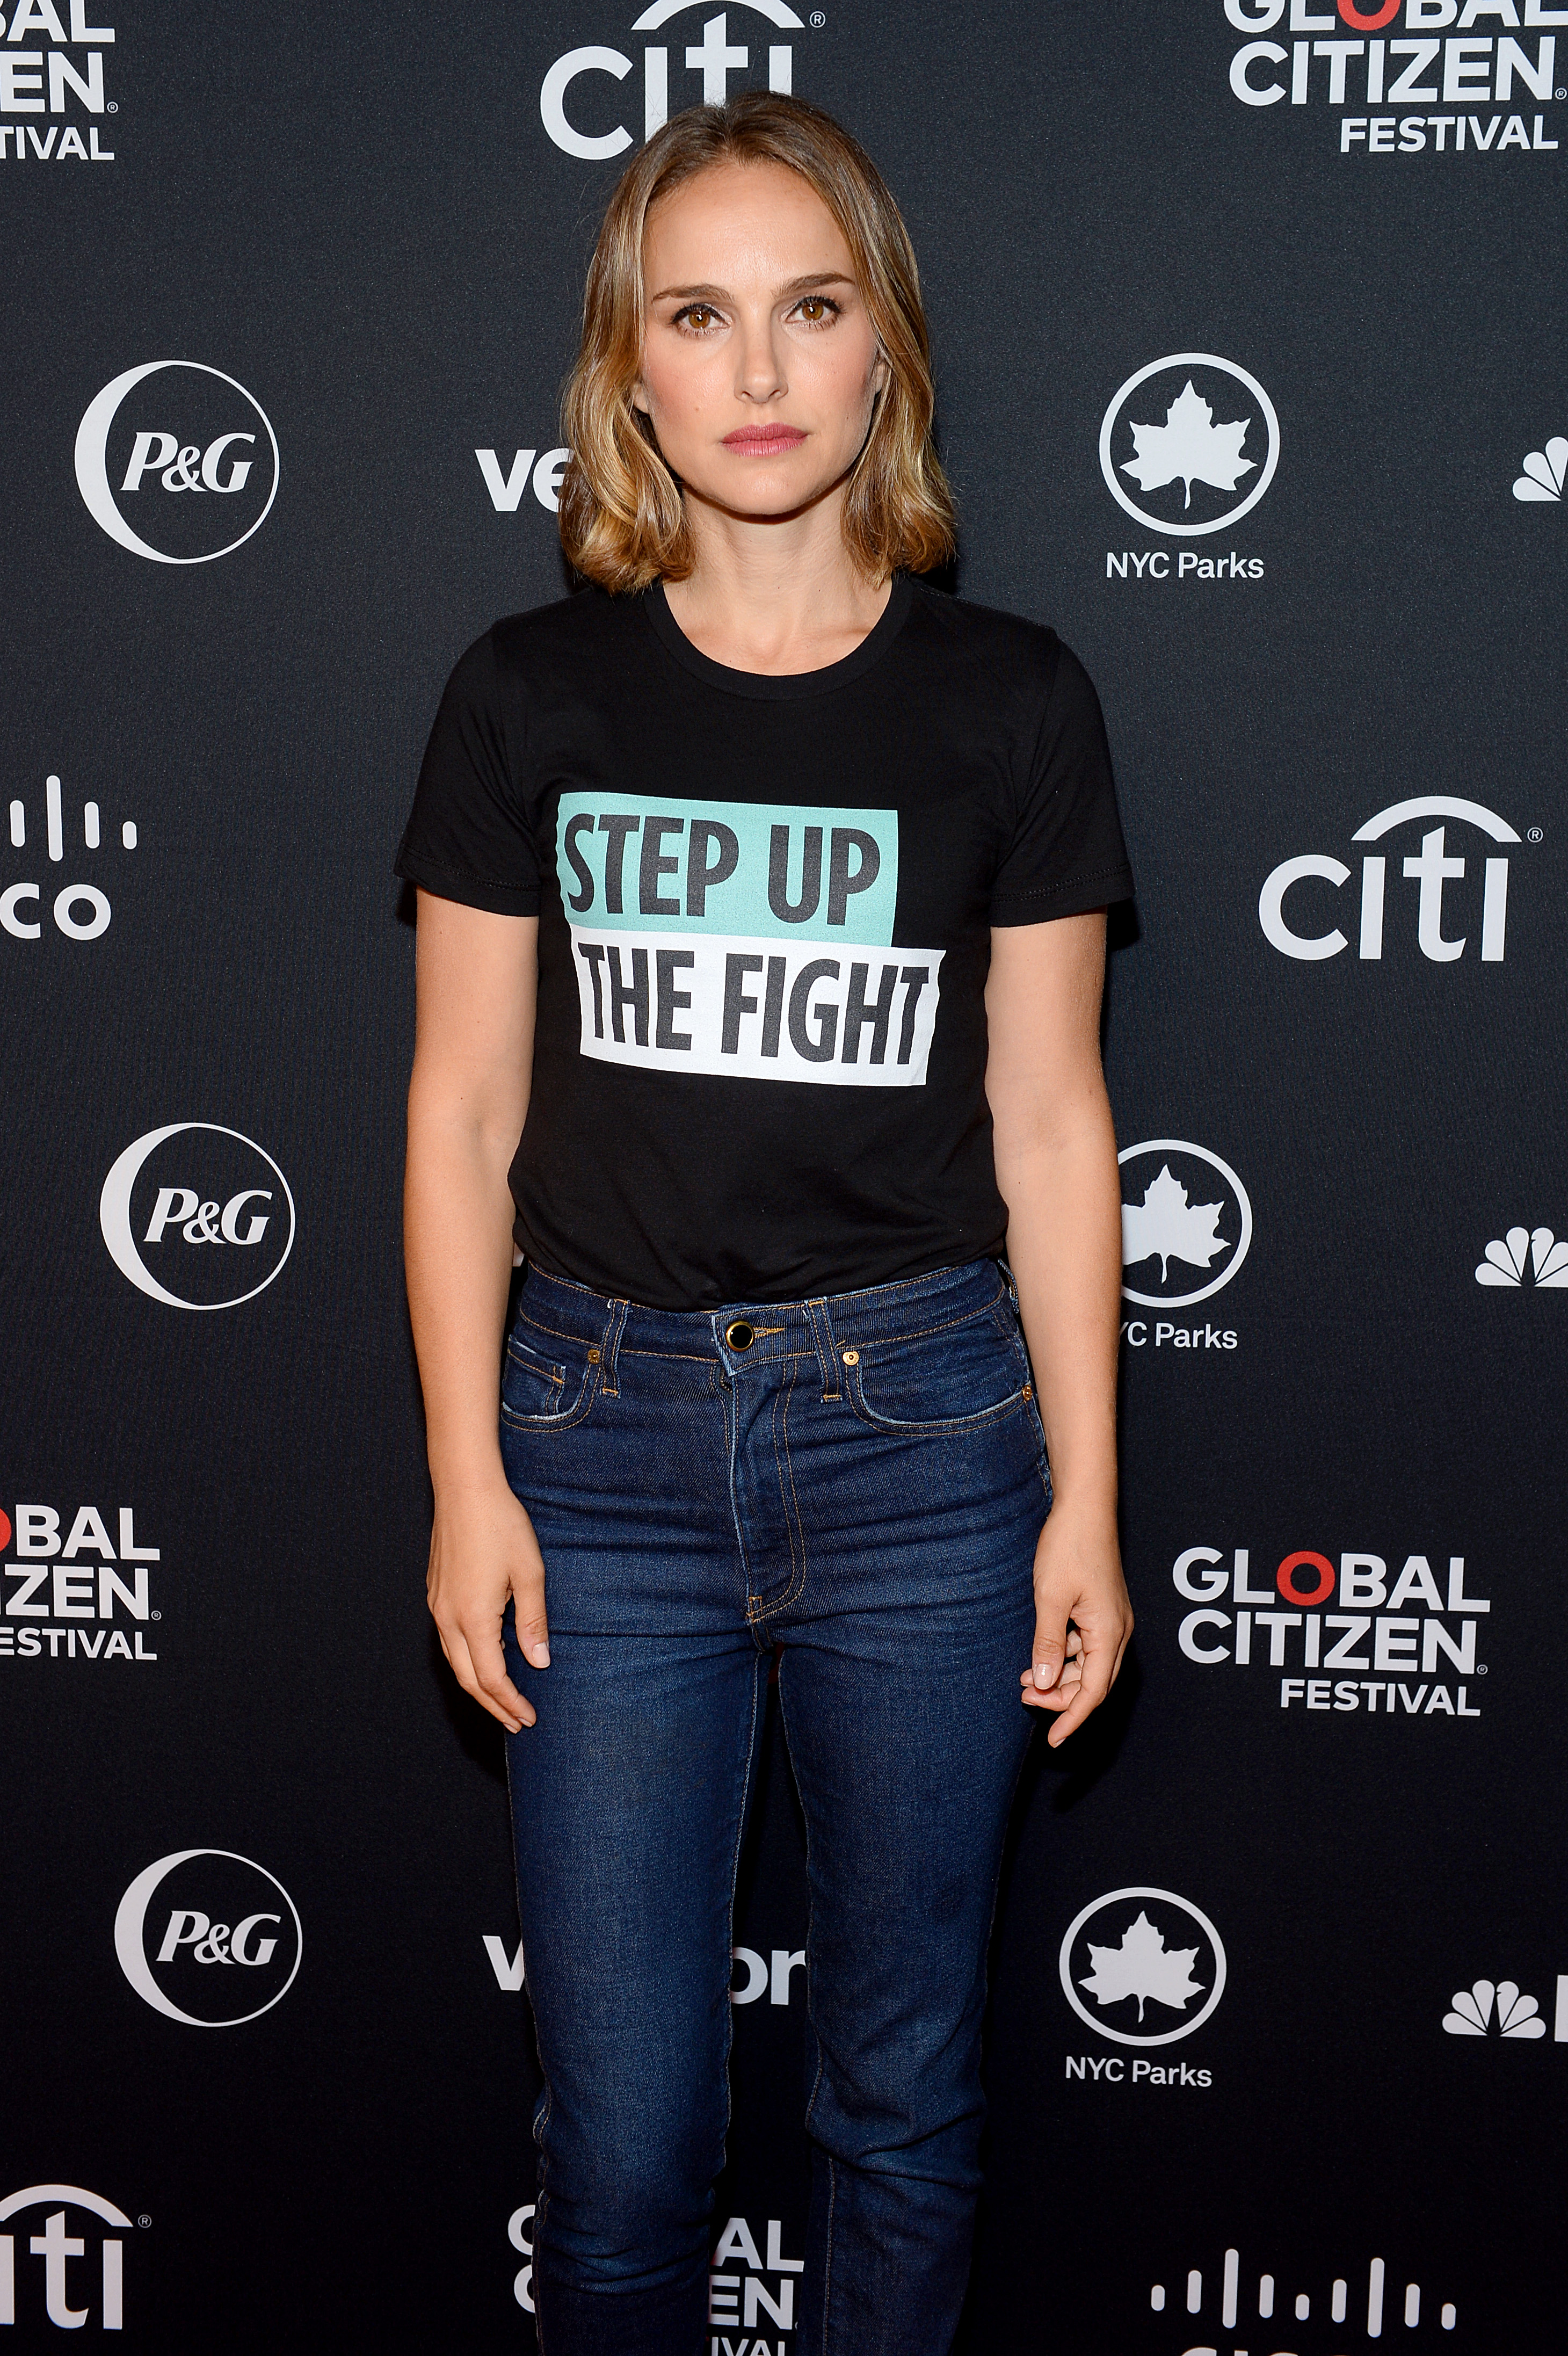 NEW YORK, NEW YORK - SEPTEMBER 28: Natalie Portman attends the 2019 Global Citizen Festival: Power The Movement in Central Park on September 28, 2019 in New York City. (Photo by Noam Galai/Getty Images for Global Citizen)